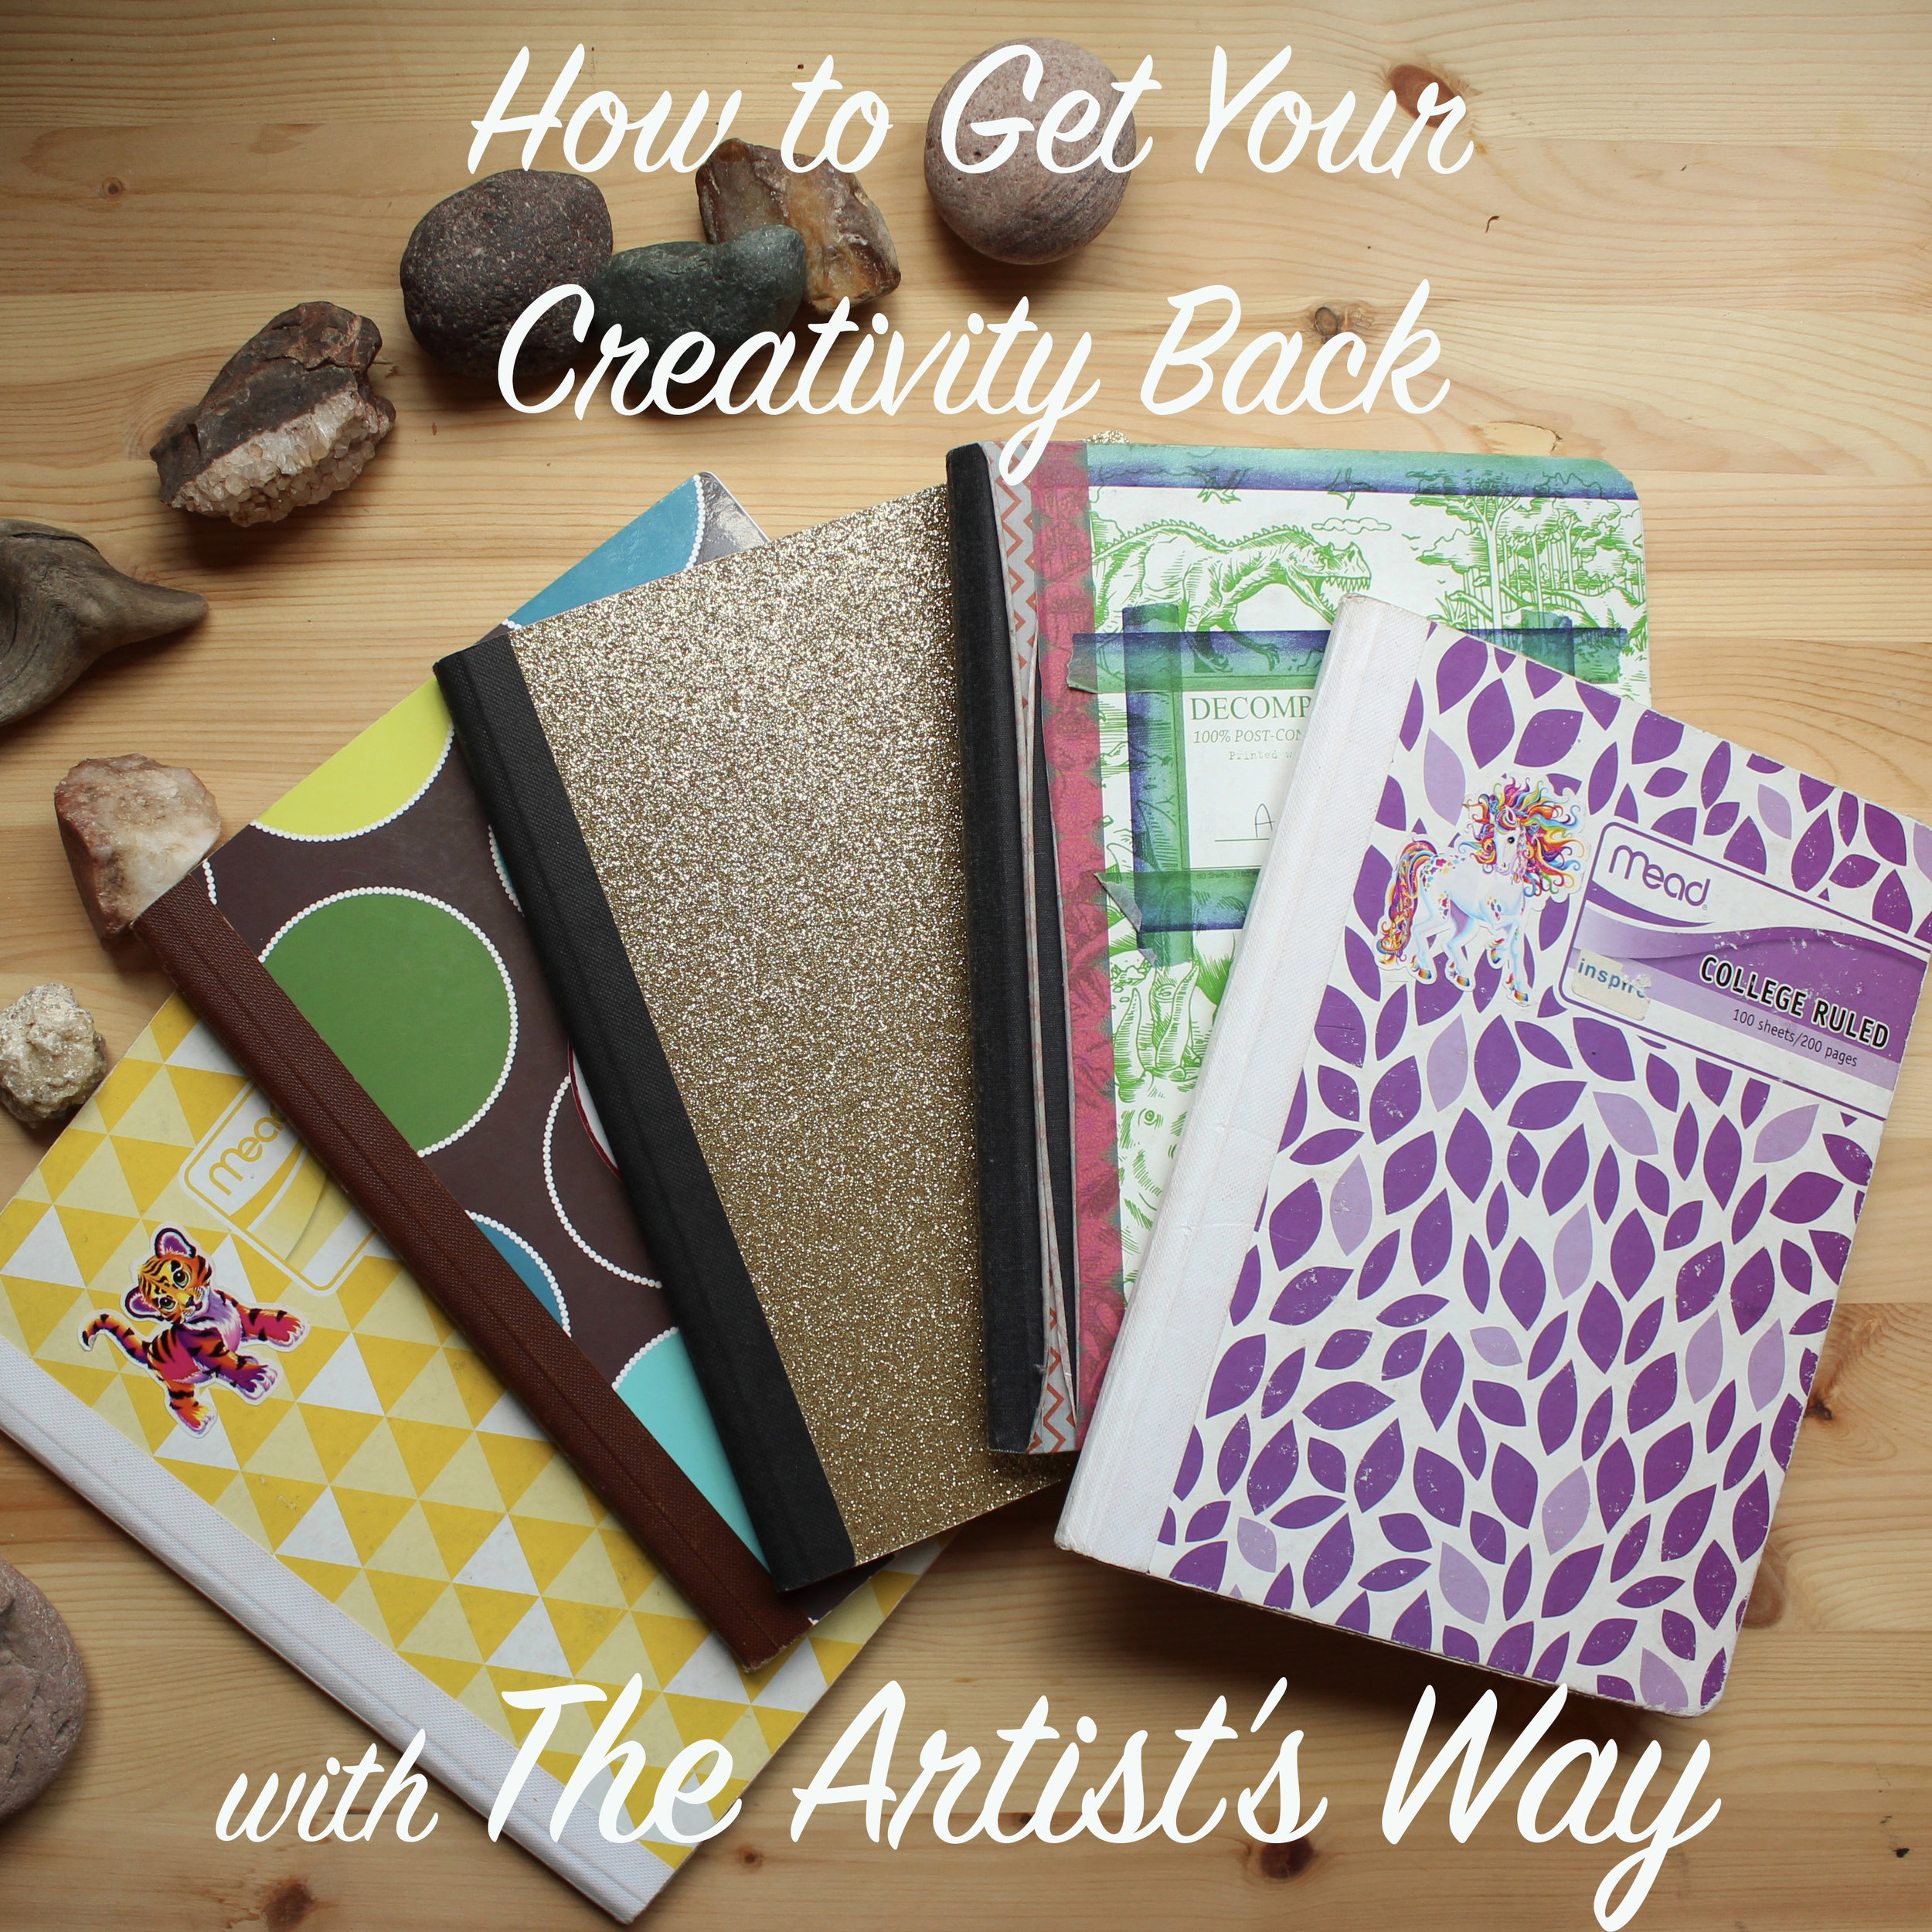 """The creative recovery process includes """"Morning Pages,"""" a form of journaling specific to The Artist's Way."""